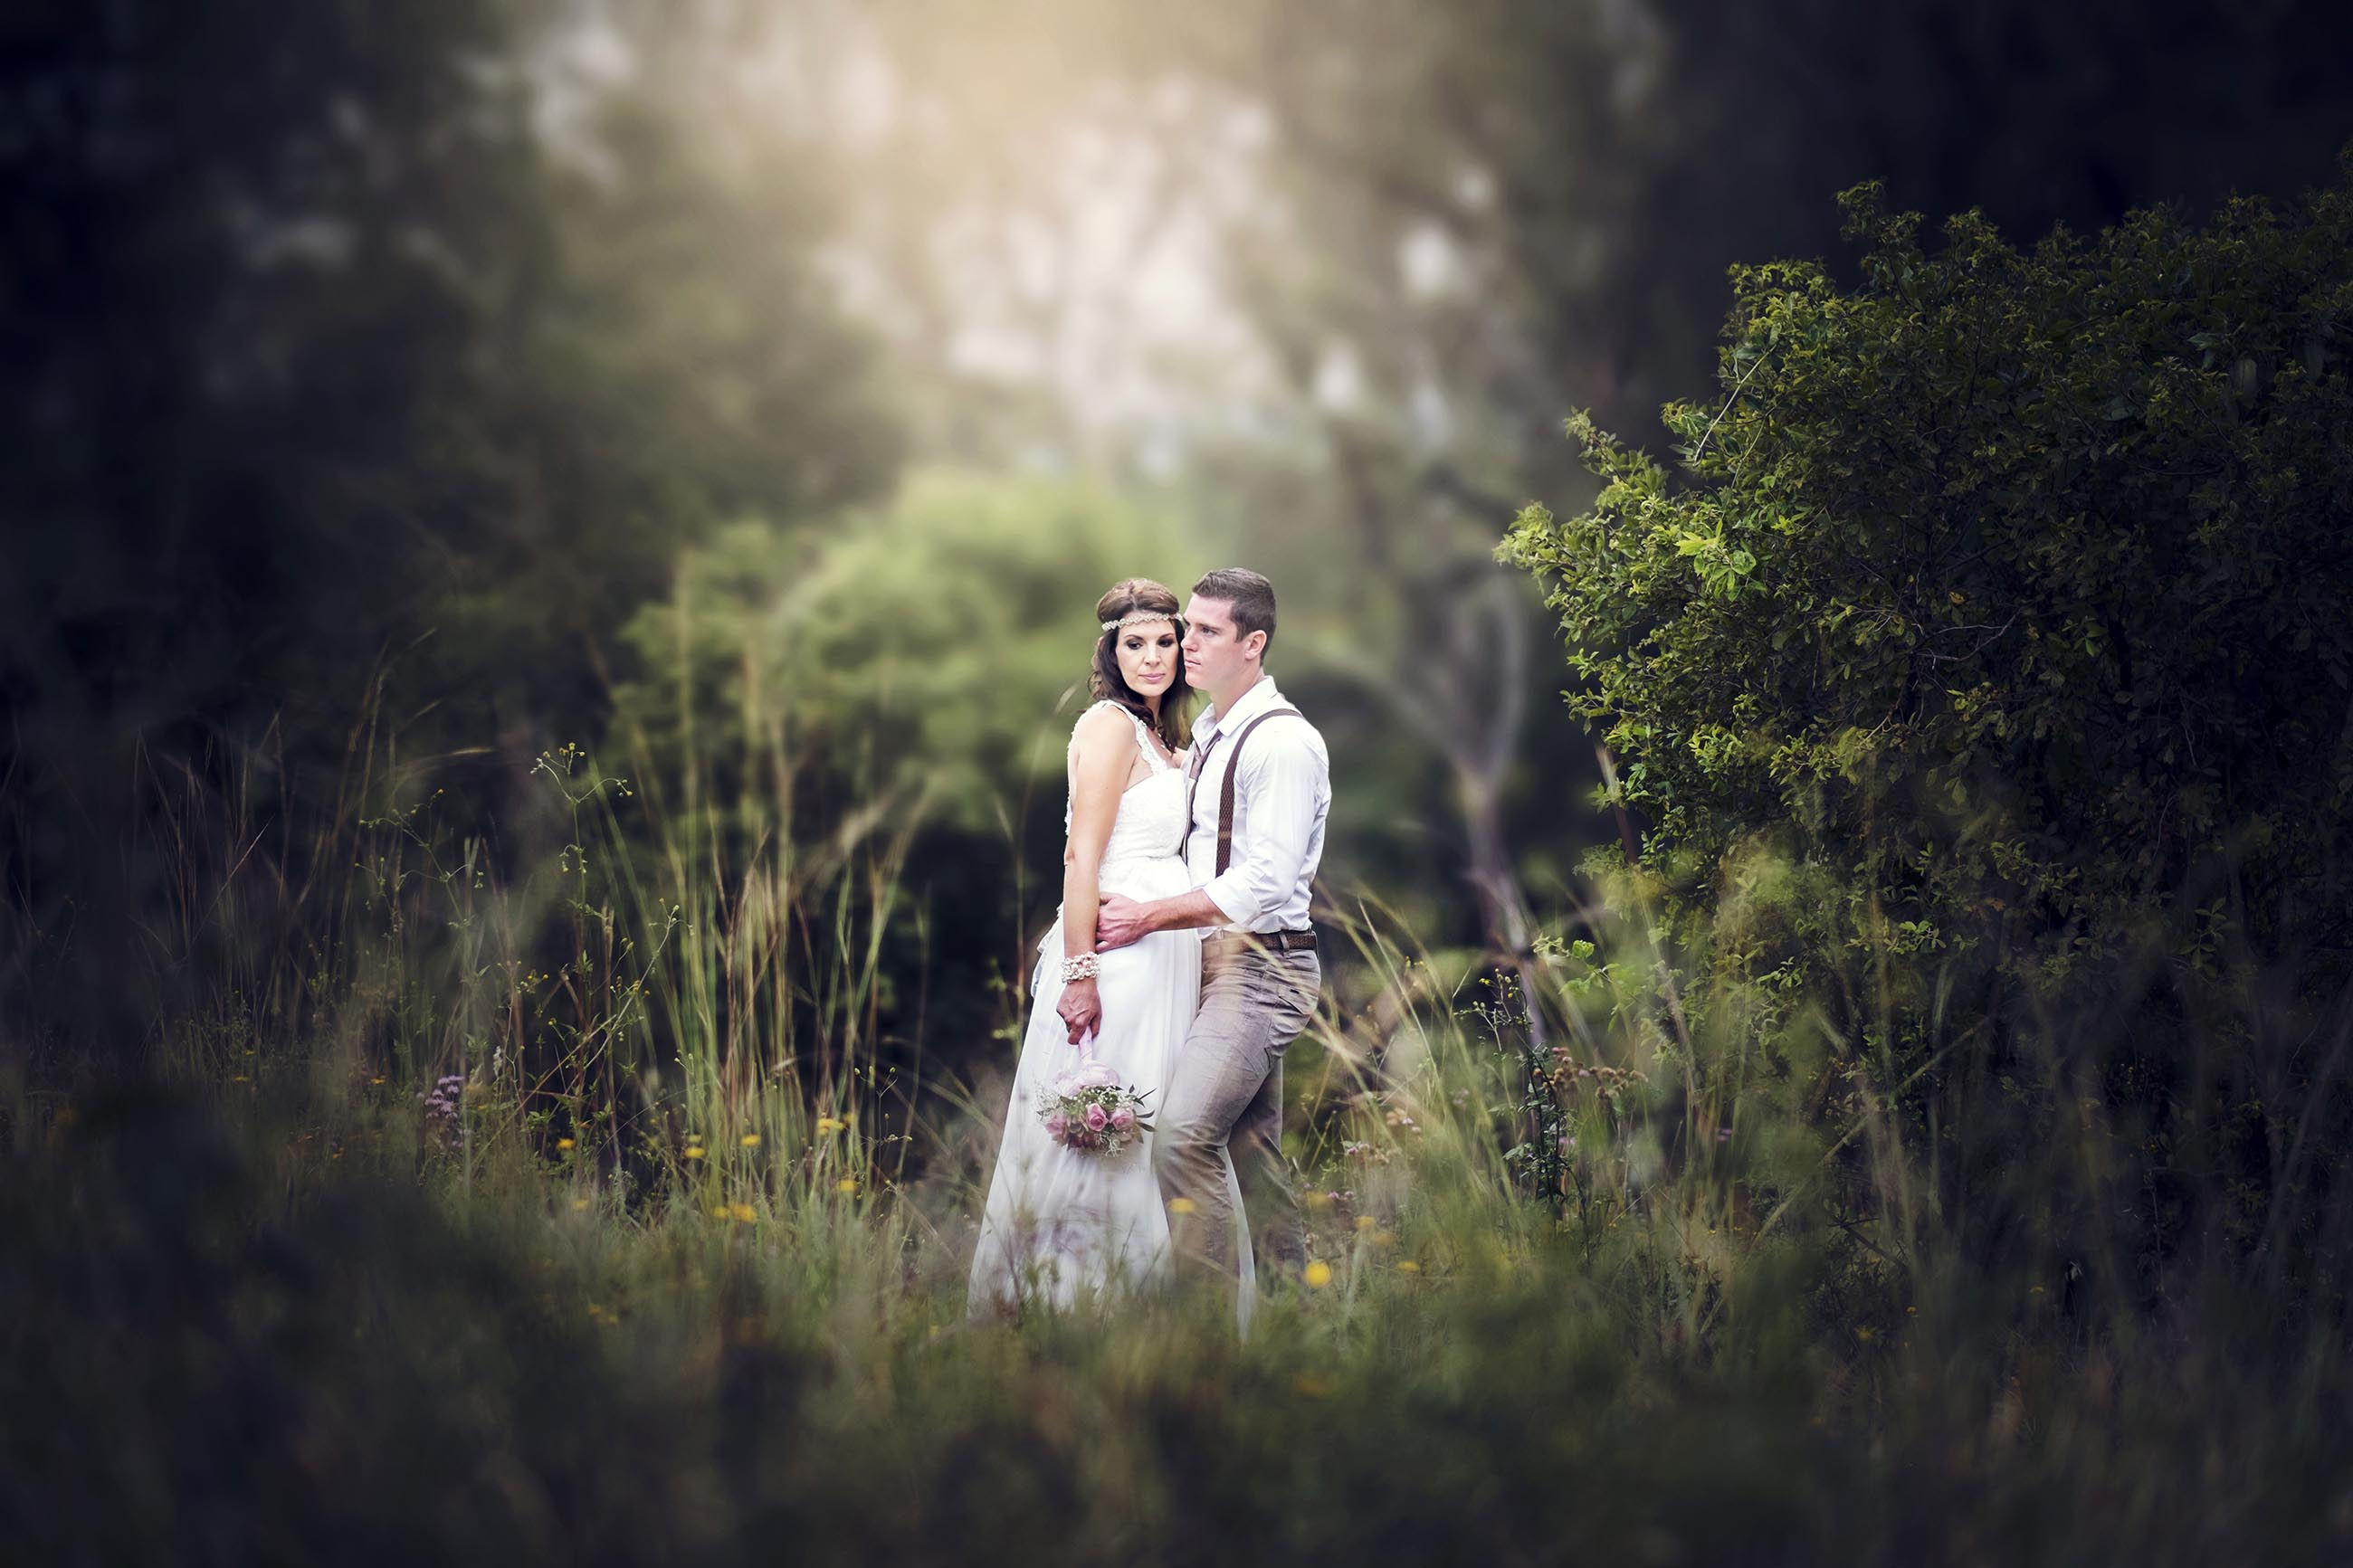 Darrell Fraser Avianto Wedding Photographer